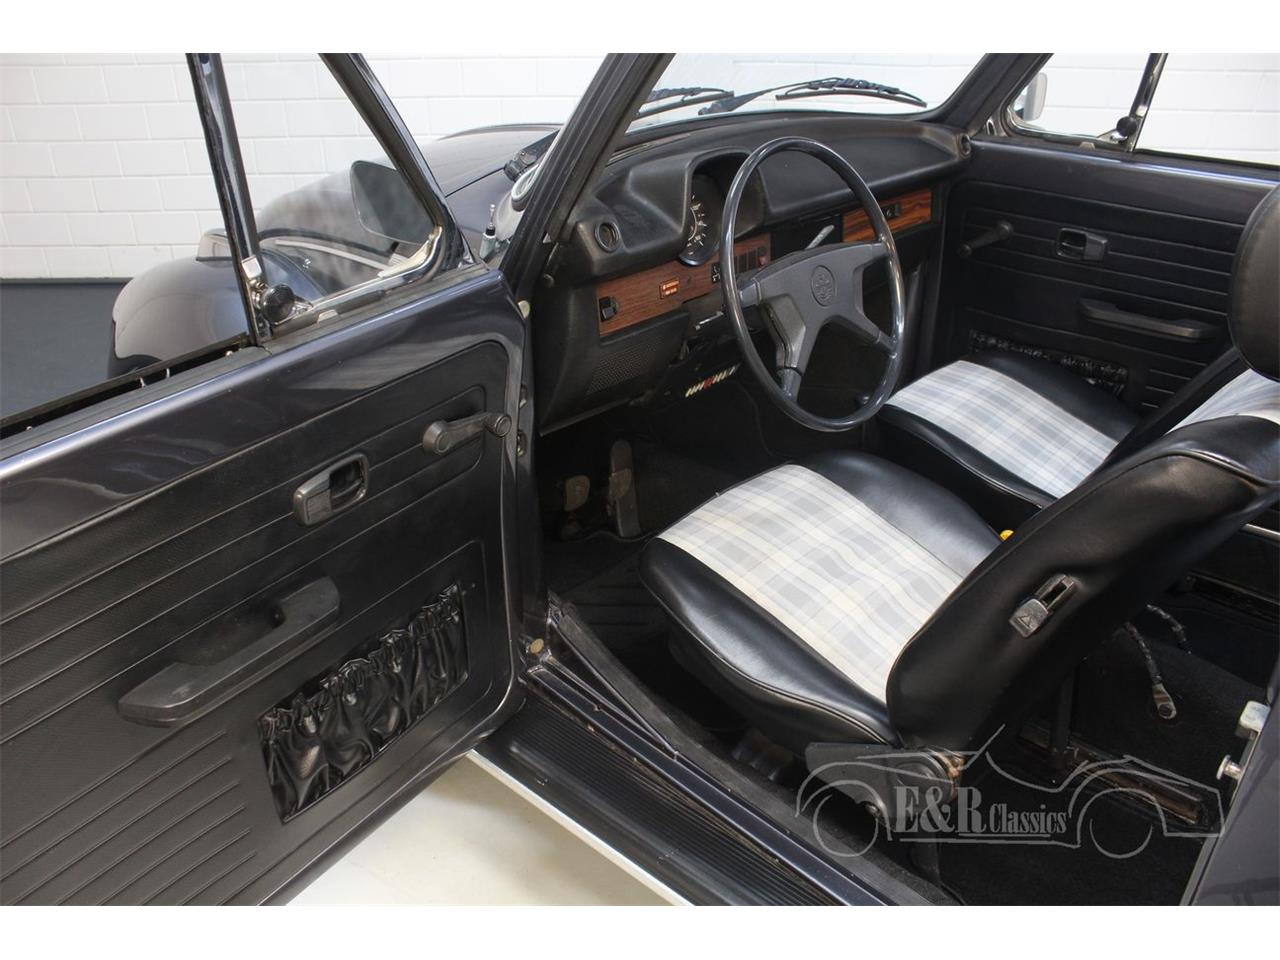 Large Picture of 1974 Beetle located in Noord-Brabant - $27,950.00 - QC3W